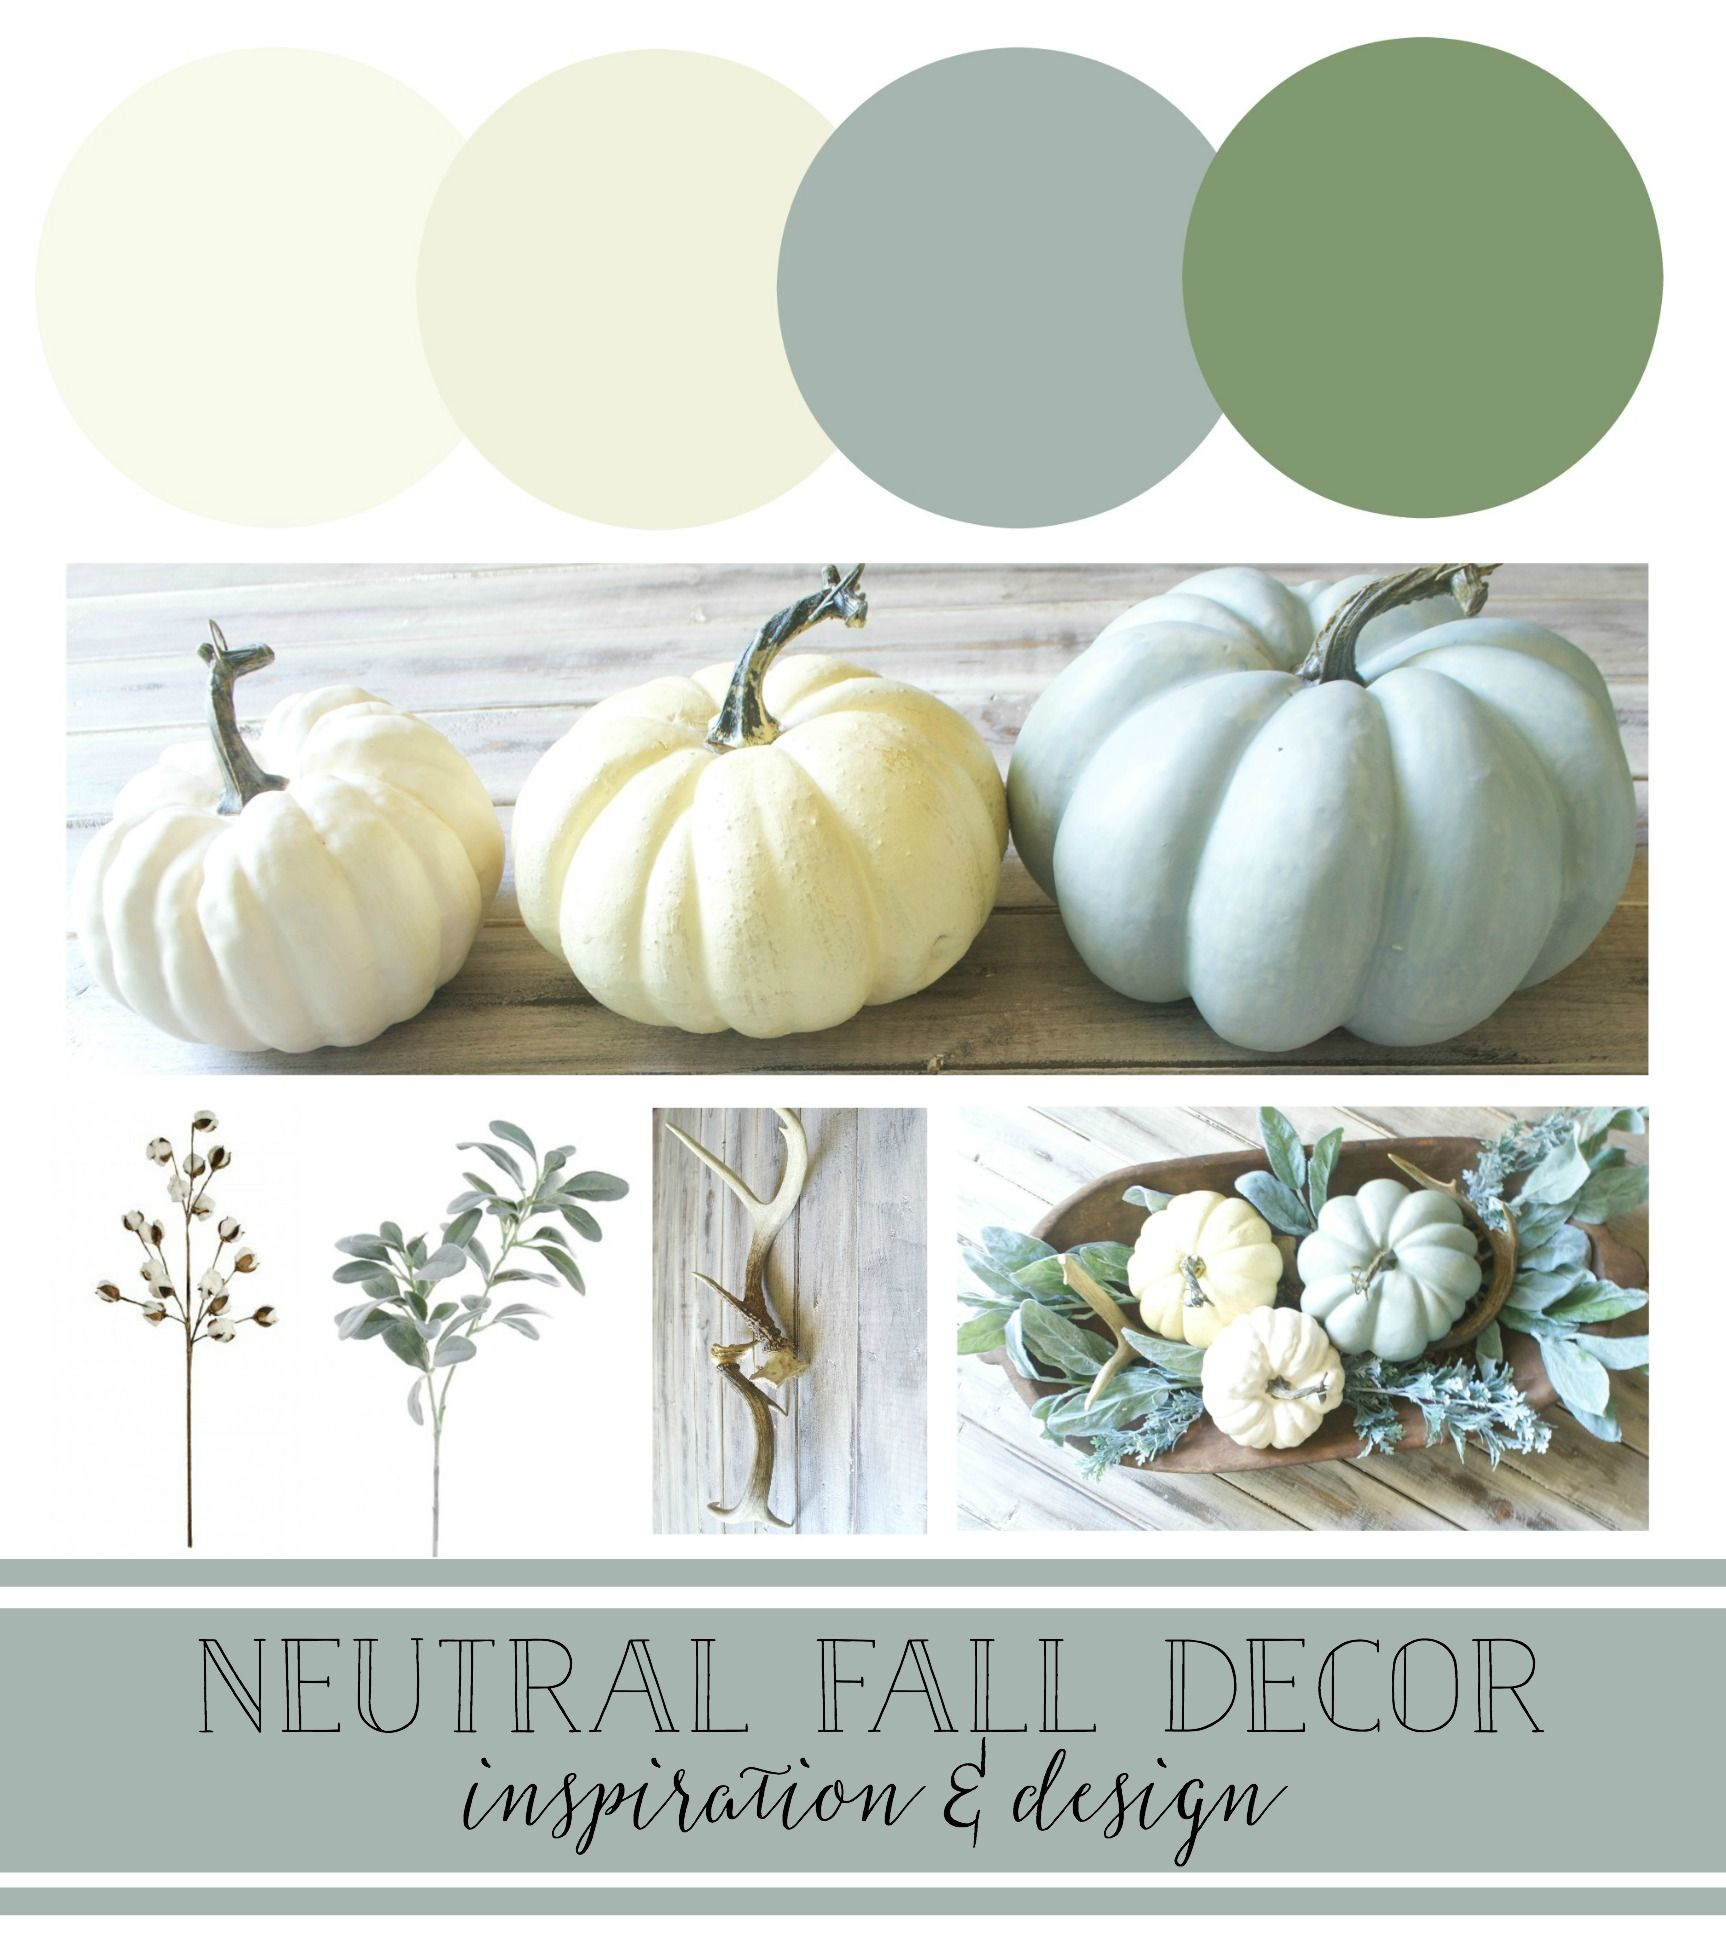 Photo of Plum Pretty Decor & Design Co.Neutrale Herbstdekorpläne – Inspiration & Design –